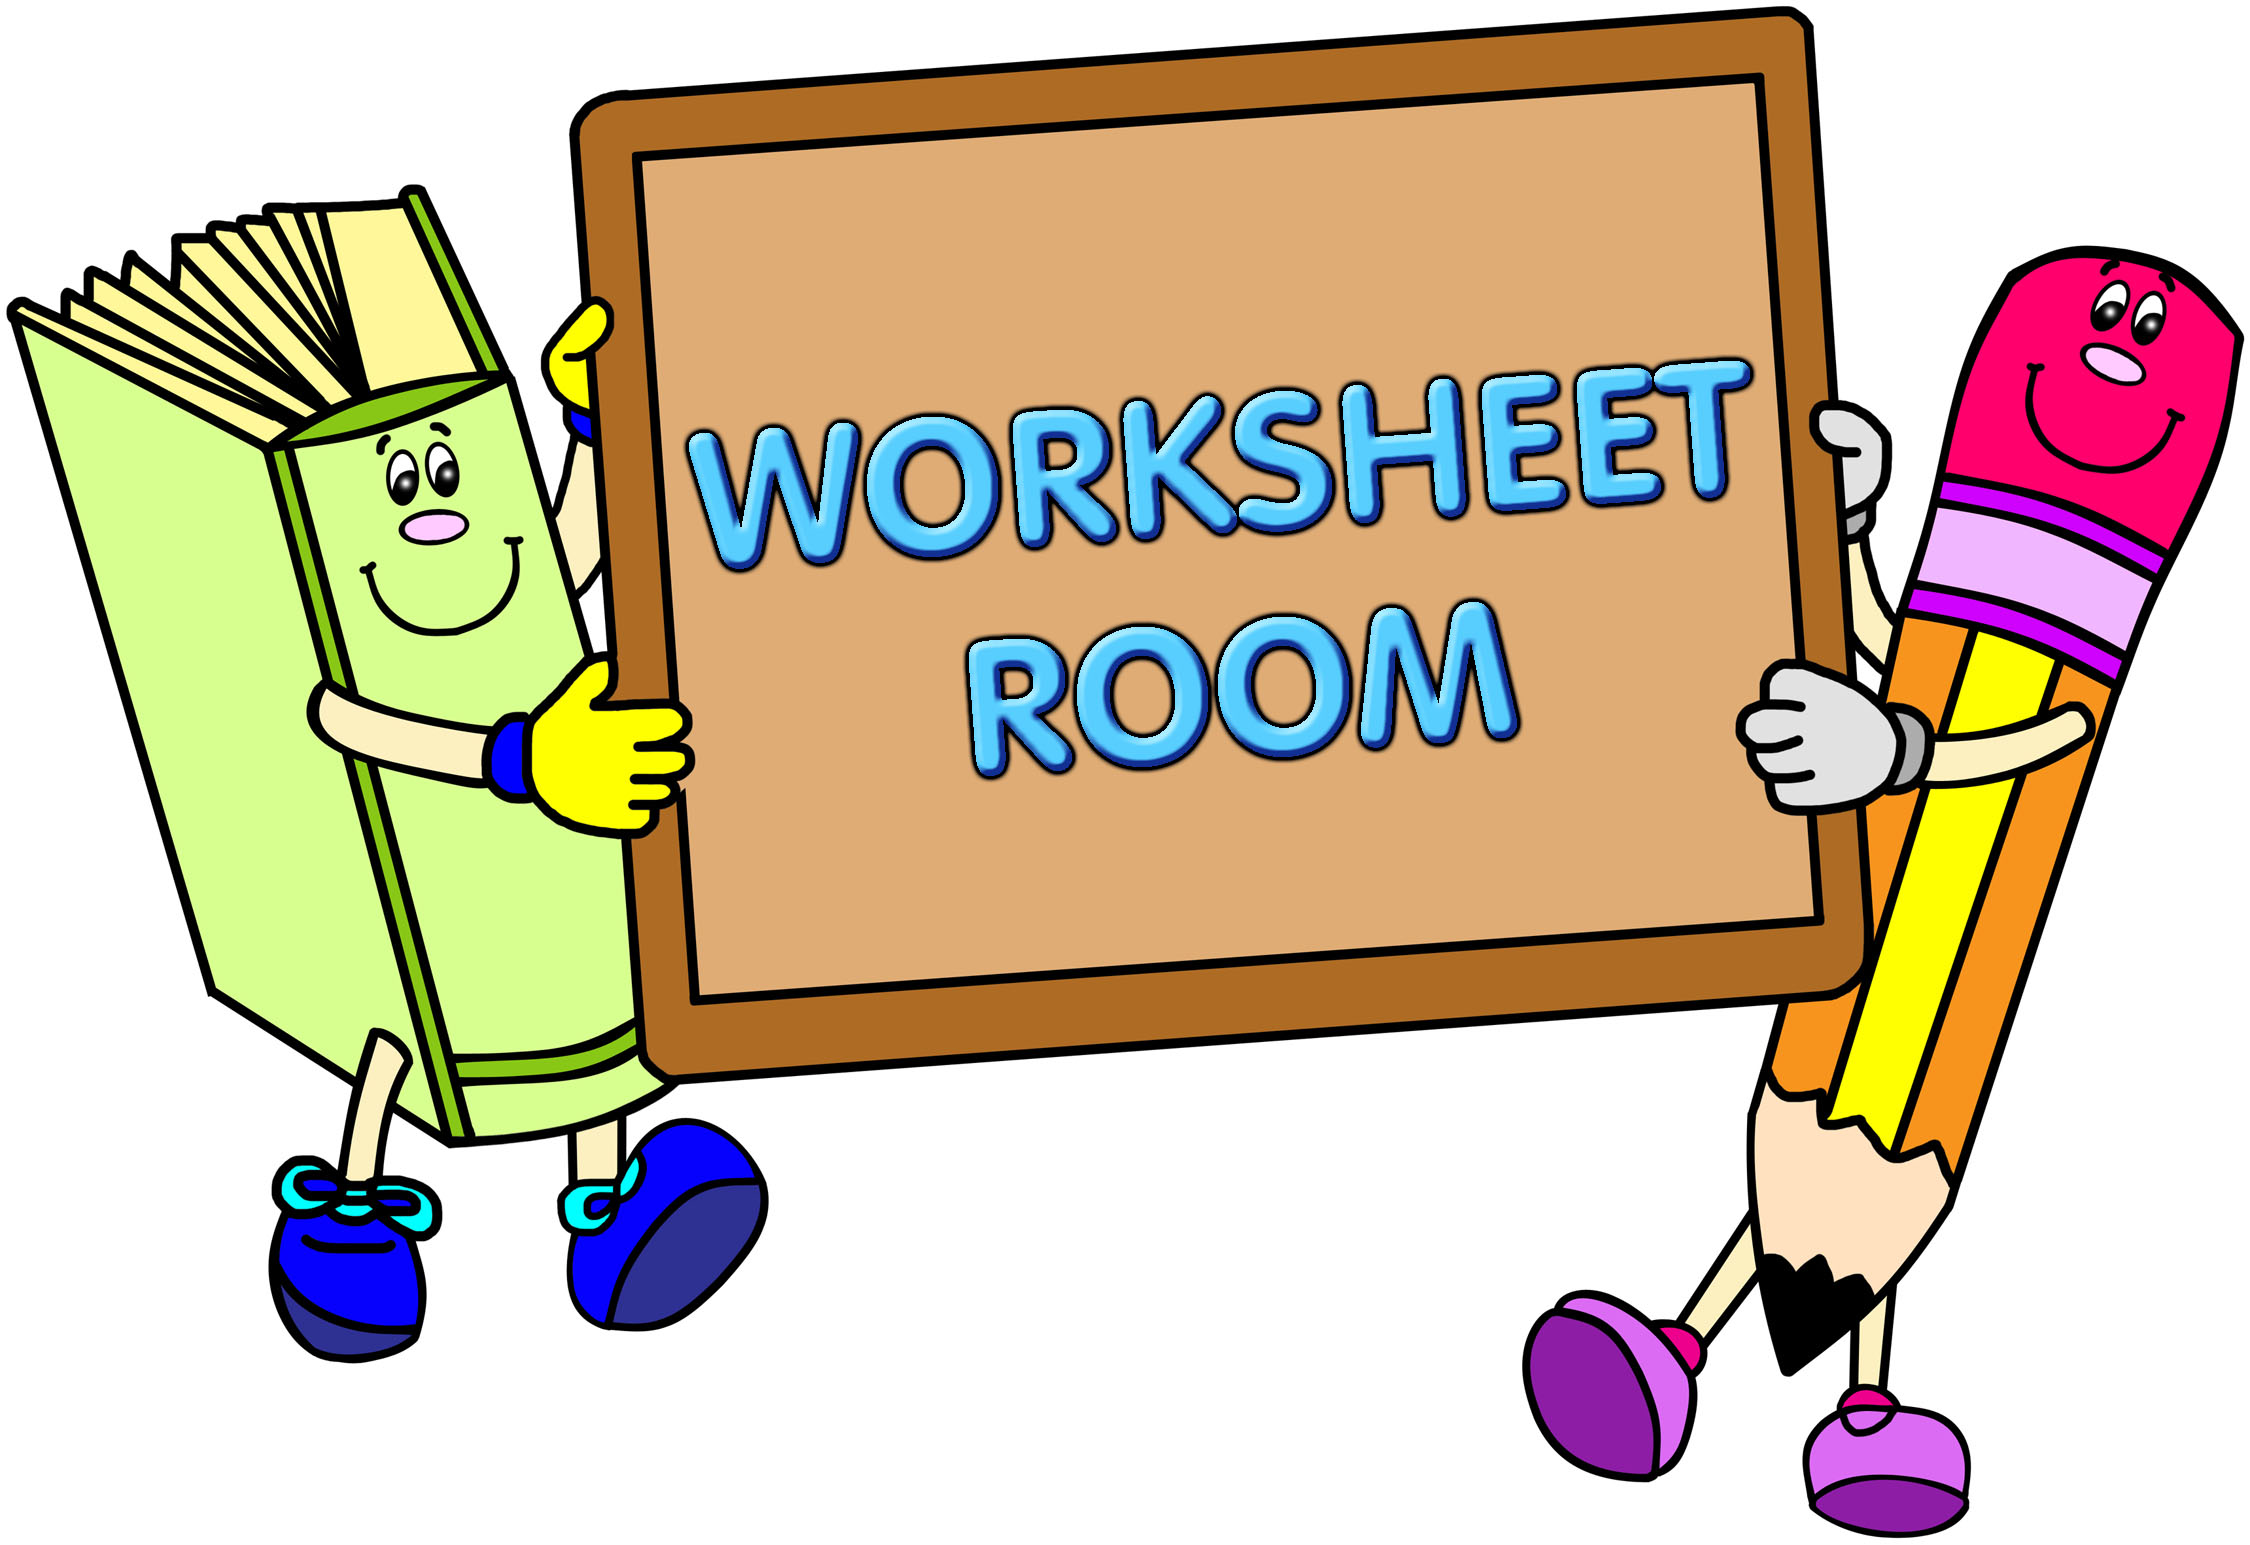 Clipart Worksheet At Getdrawings